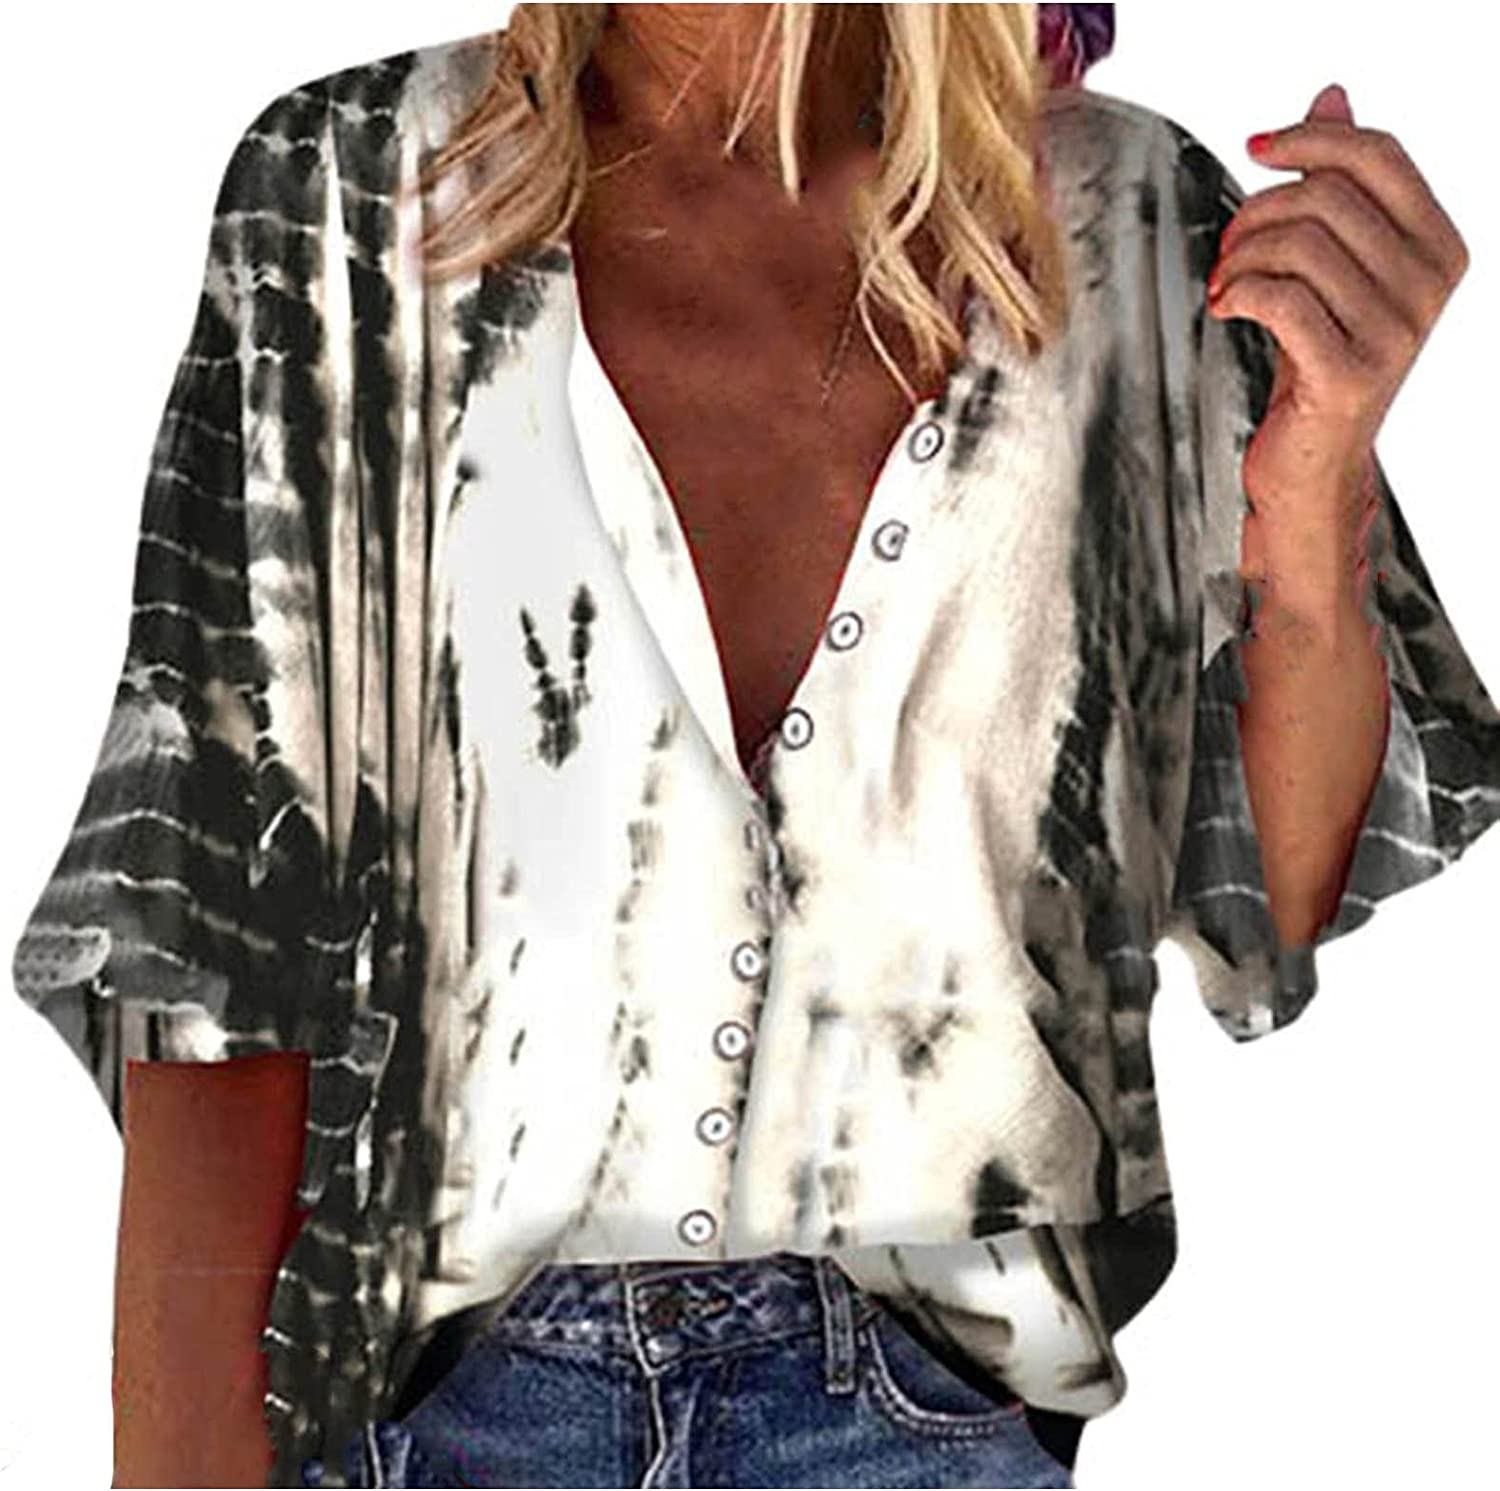 Blouses & Button-Down Shirts V-Neck Printed Blouse 3/4 Lantern Sleeve Tshirts Loose Casual Top Tunics